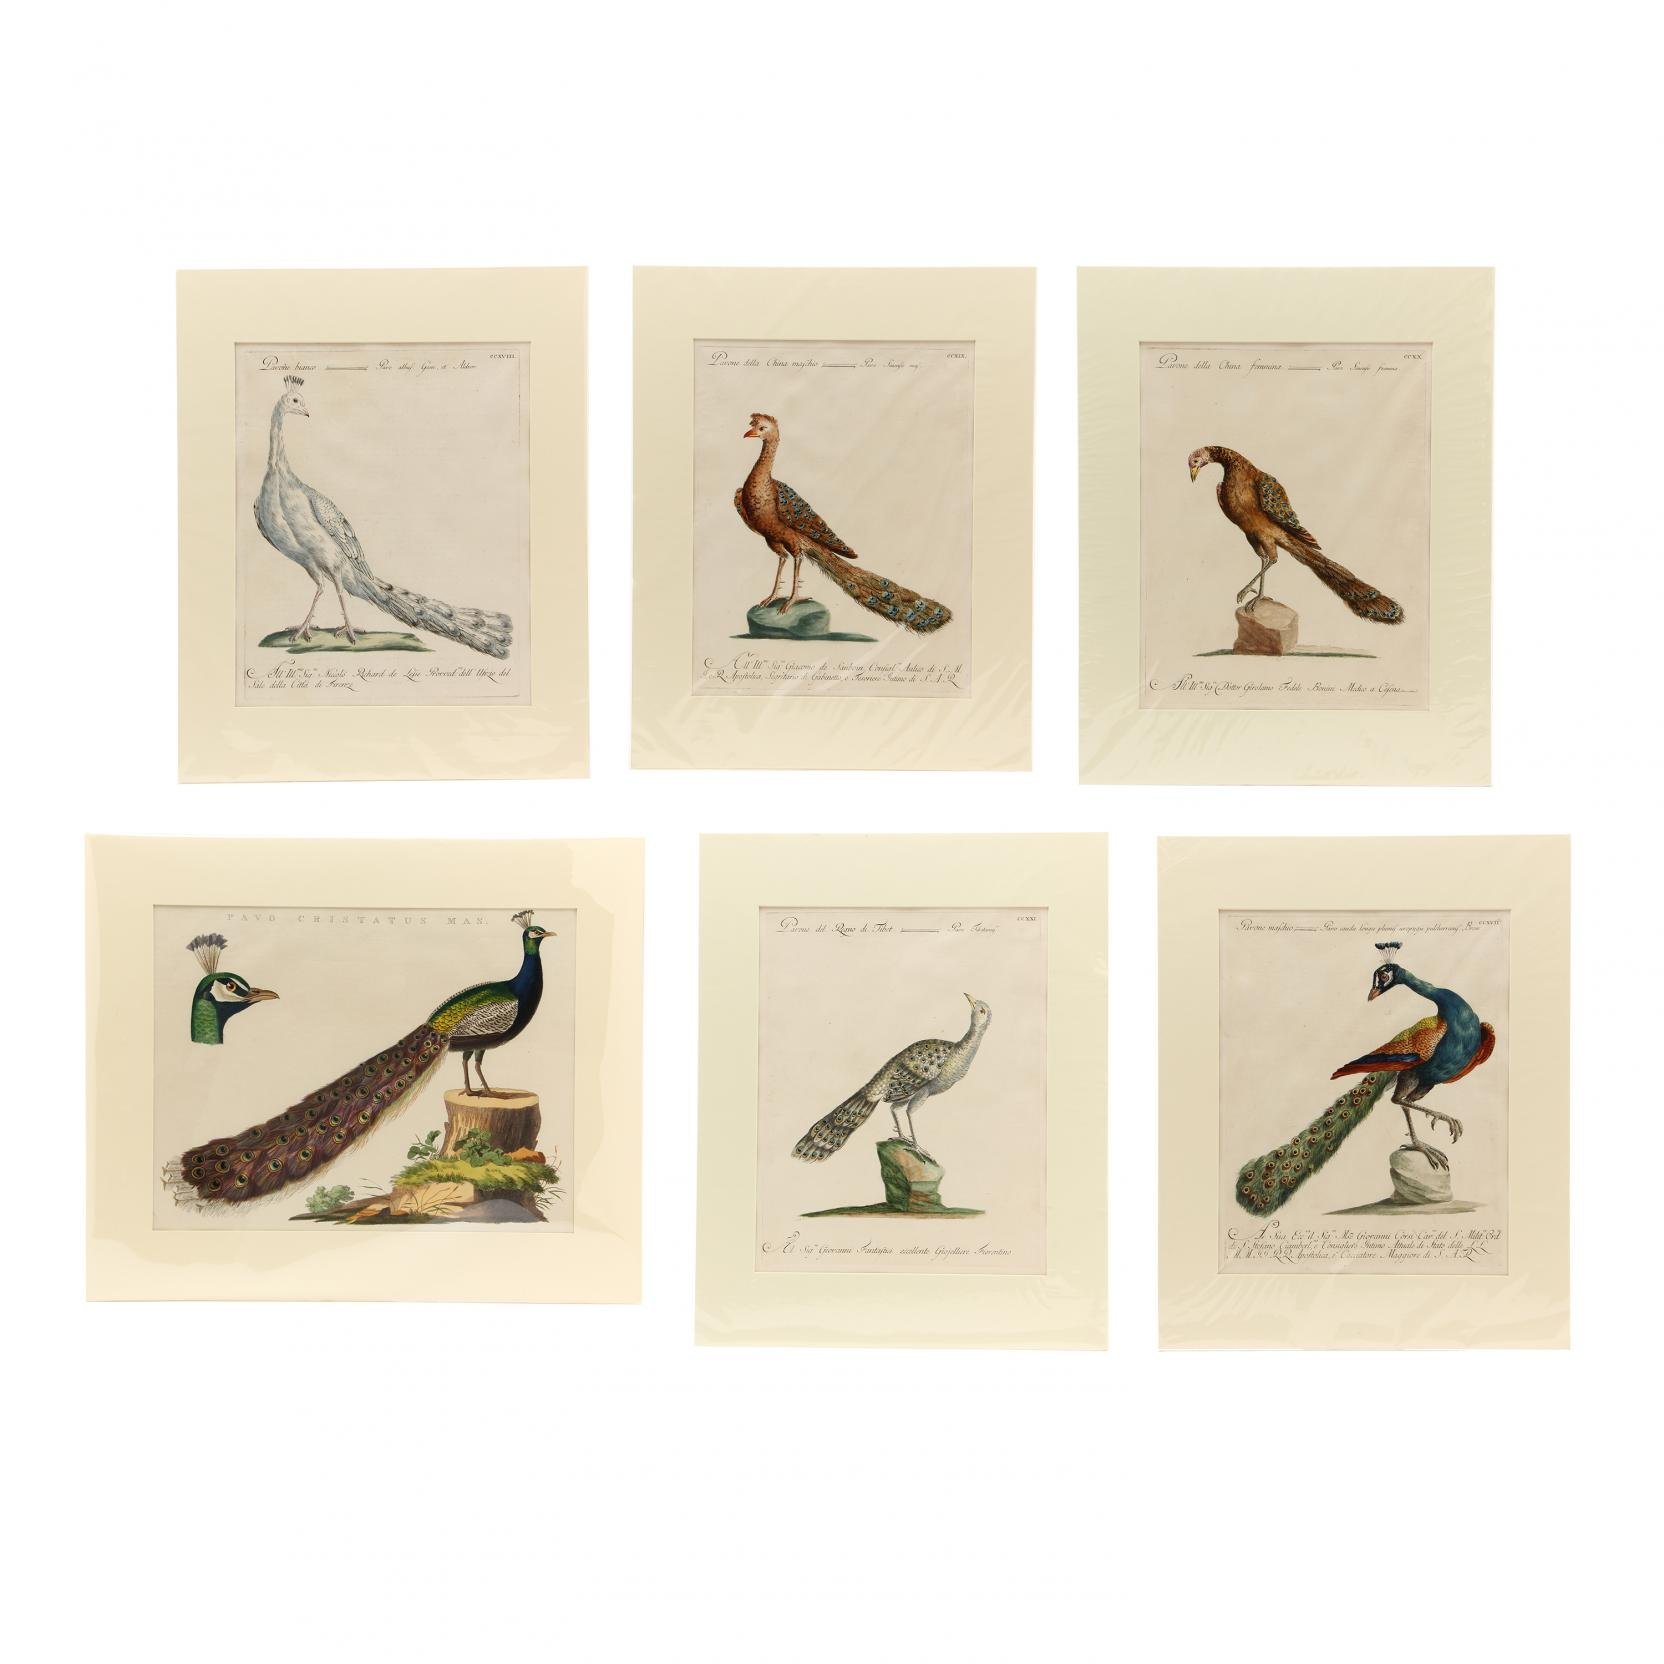 group-of-6-18th-century-prints-depicting-peacocks-by-manetti-and-nozeman